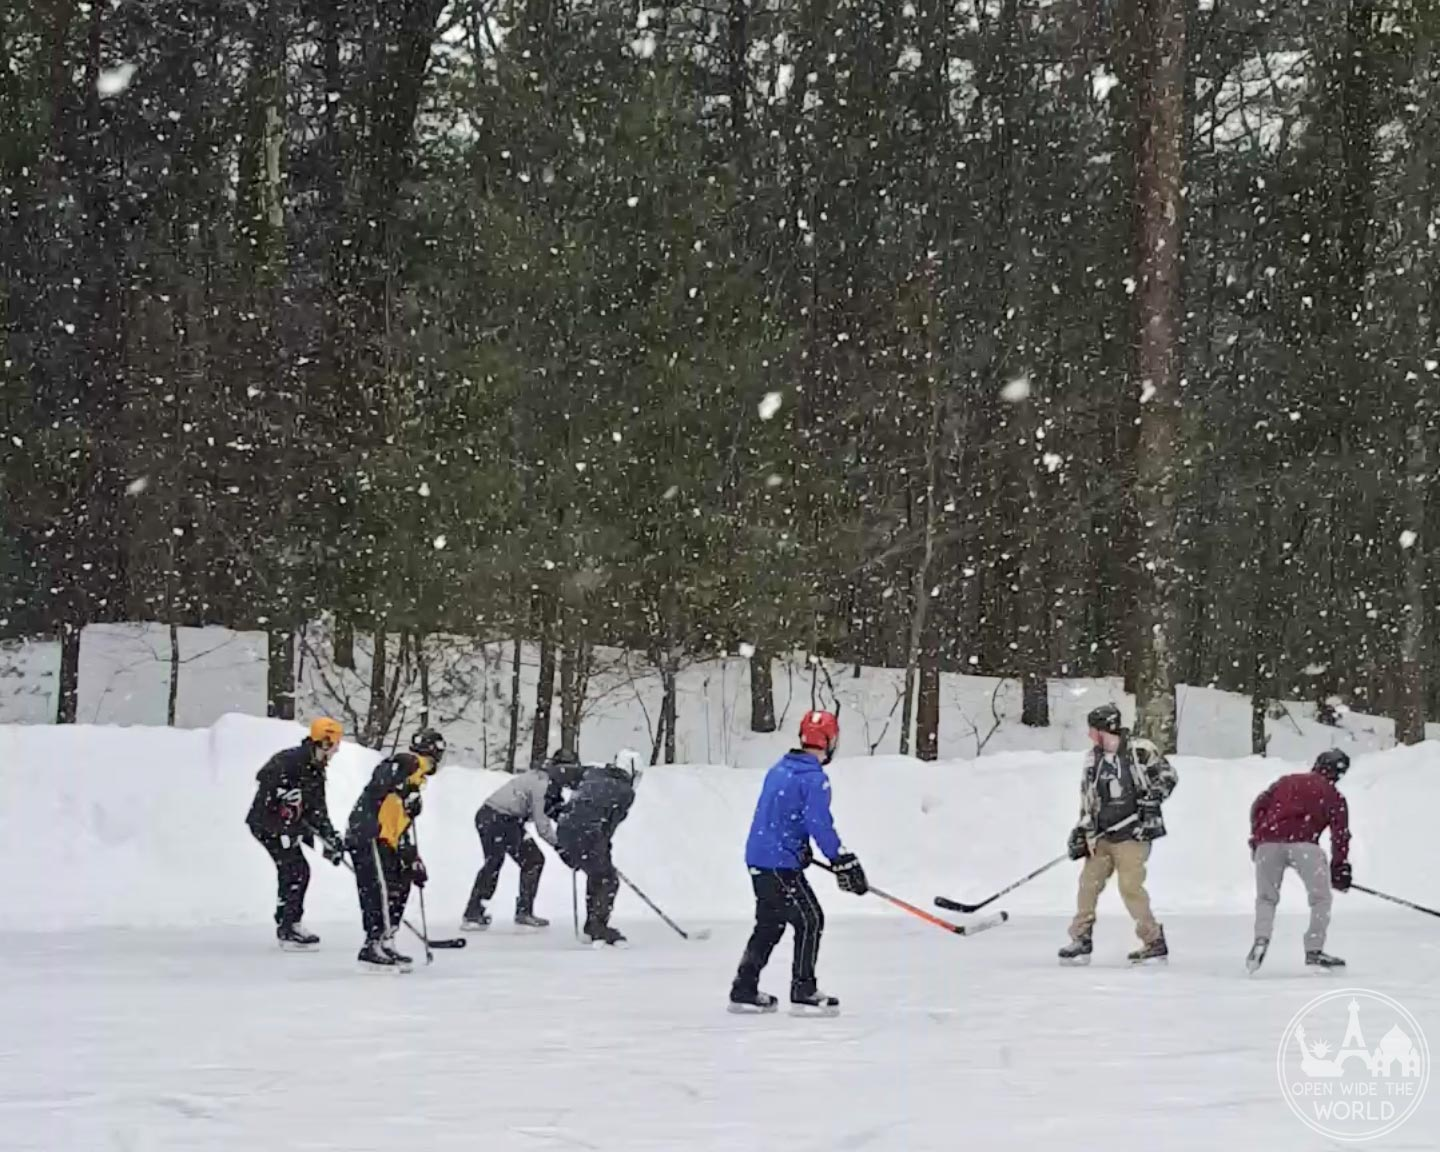 Muskegon Winter Sports Complex offers more than 2 acres of ice rinks and trails. #iceskating #openwidetheworld